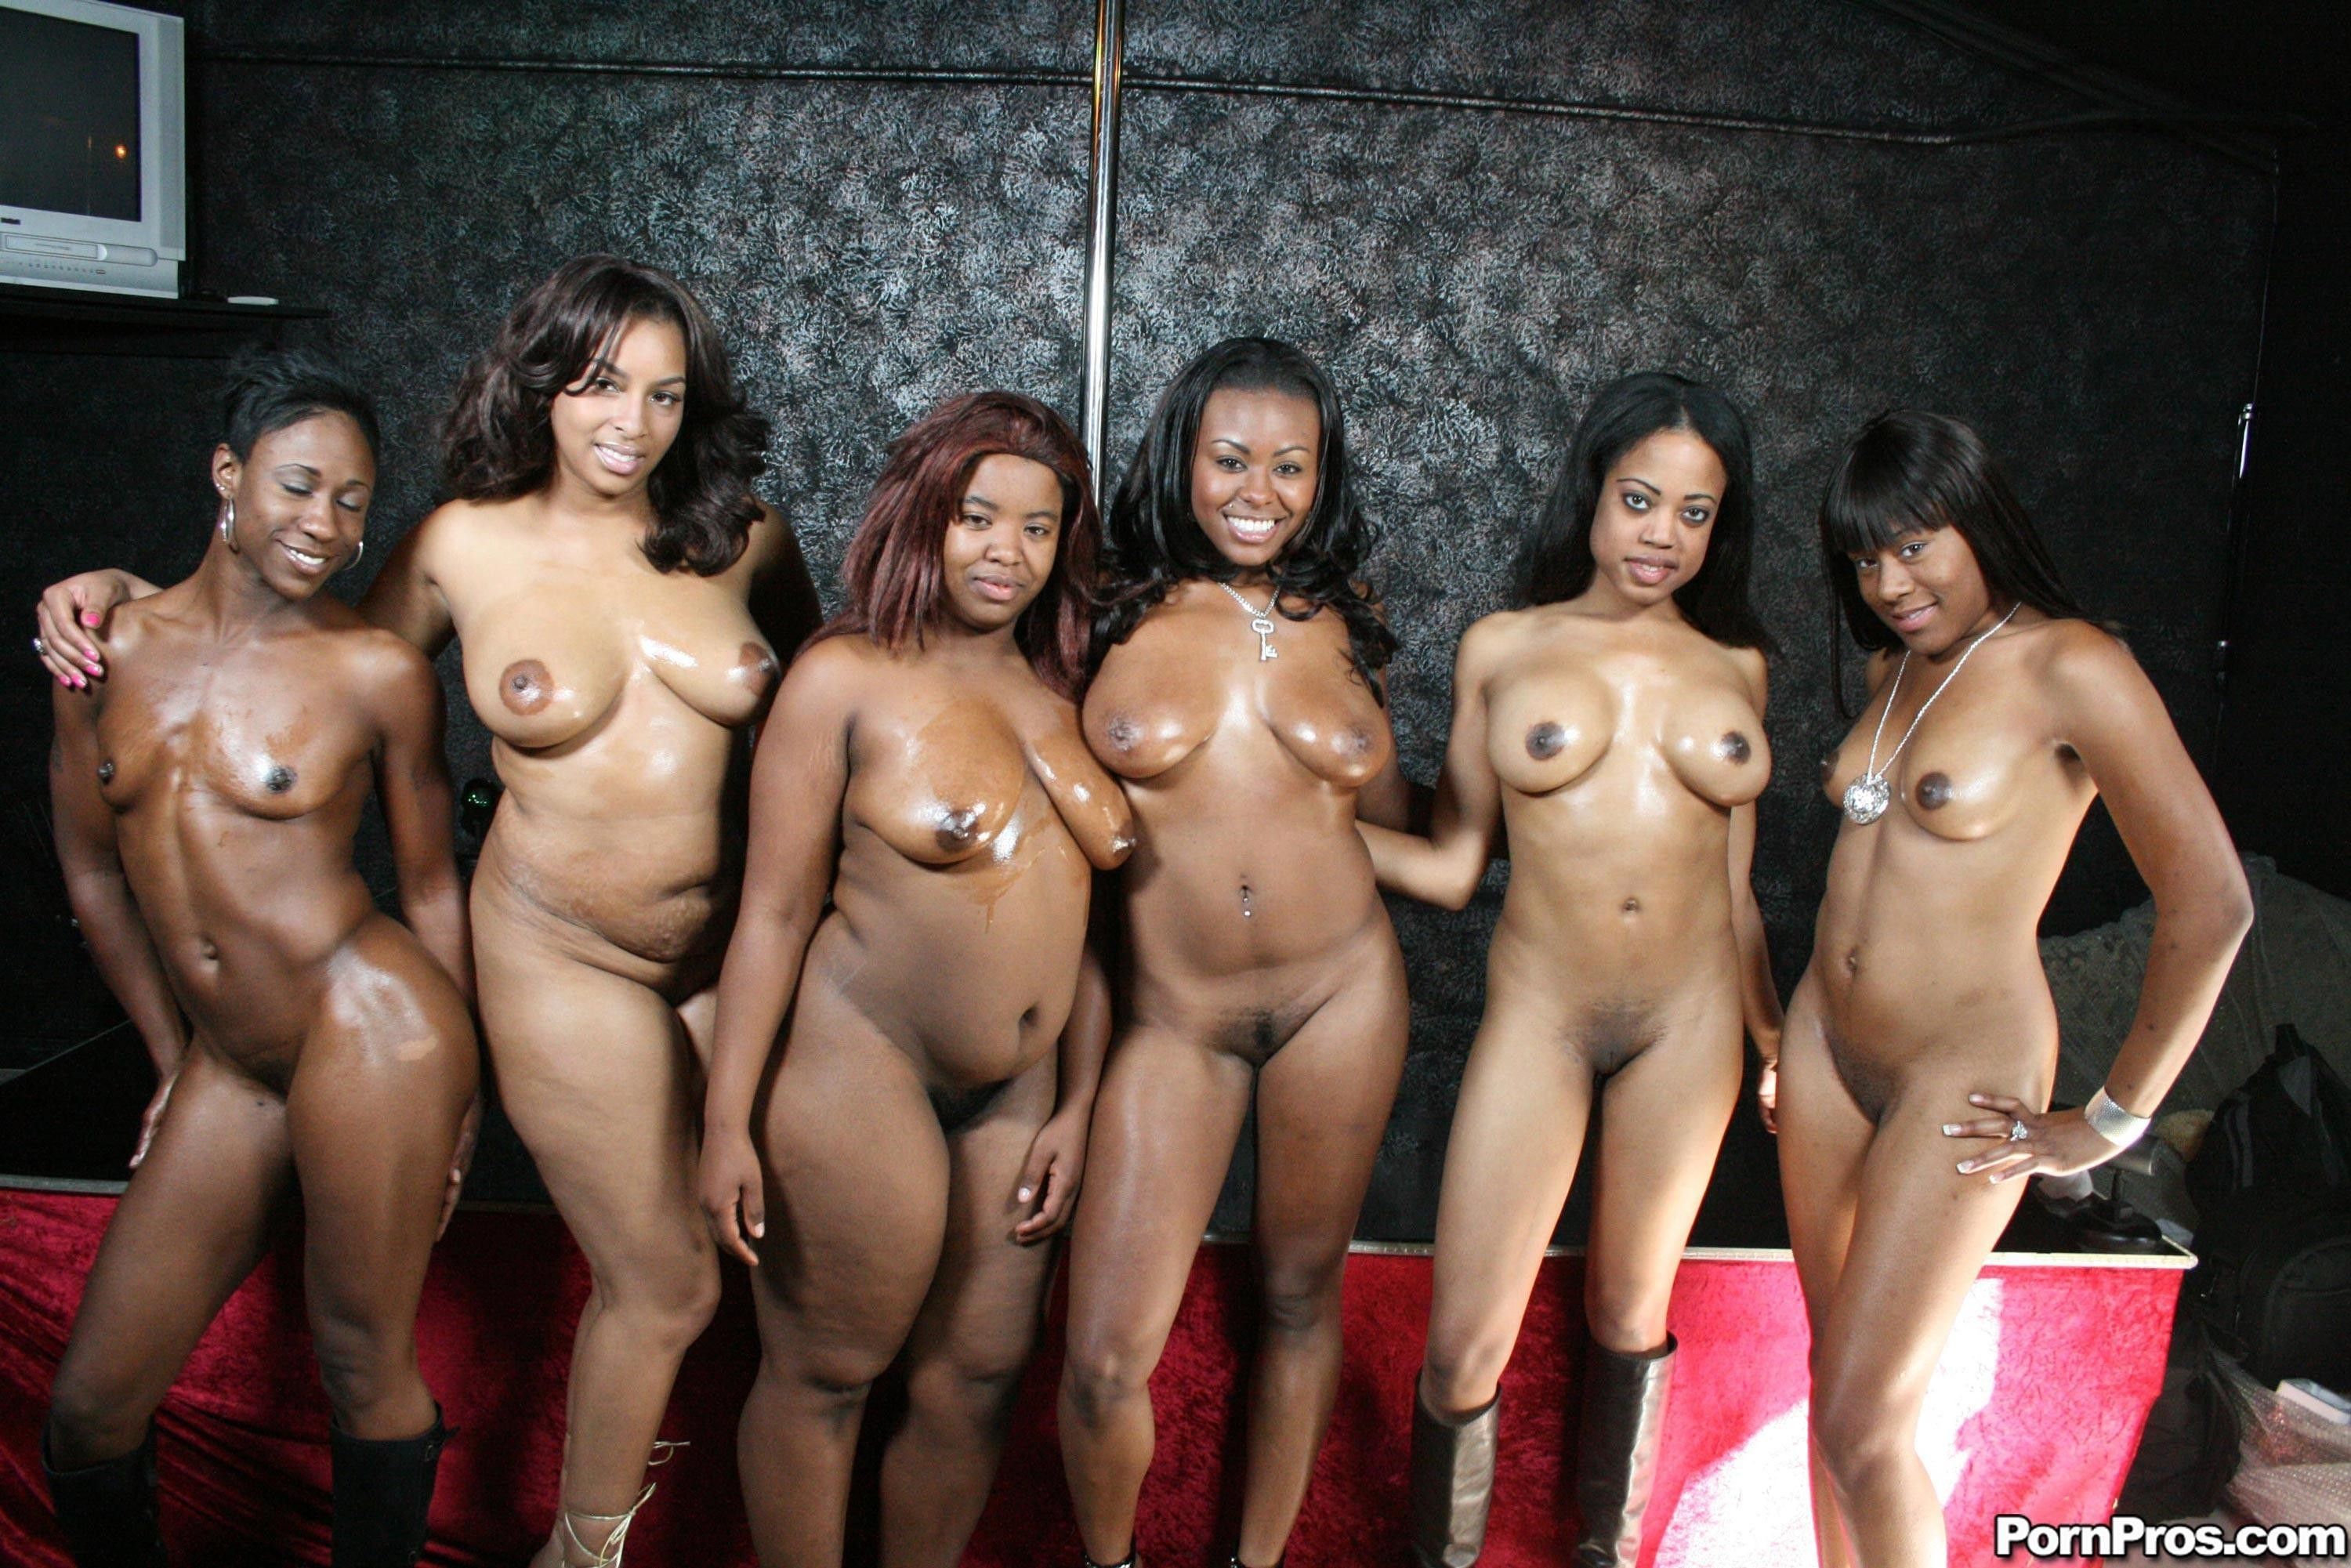 group-of-hot-ebony-girls-nude-alliance-for-mature-american